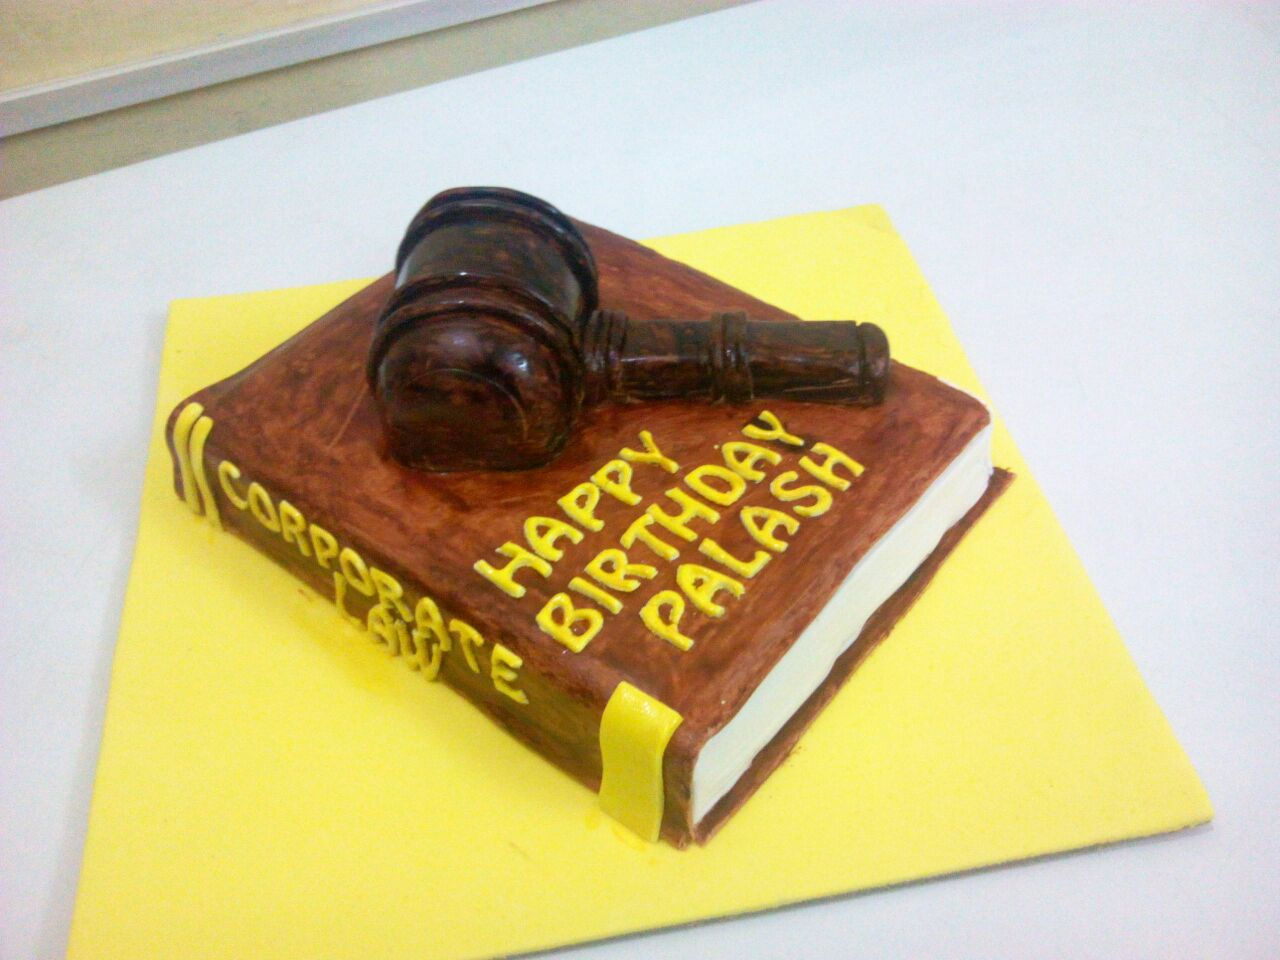 Order Corporate Law Cake Online Unique Design Yummycake